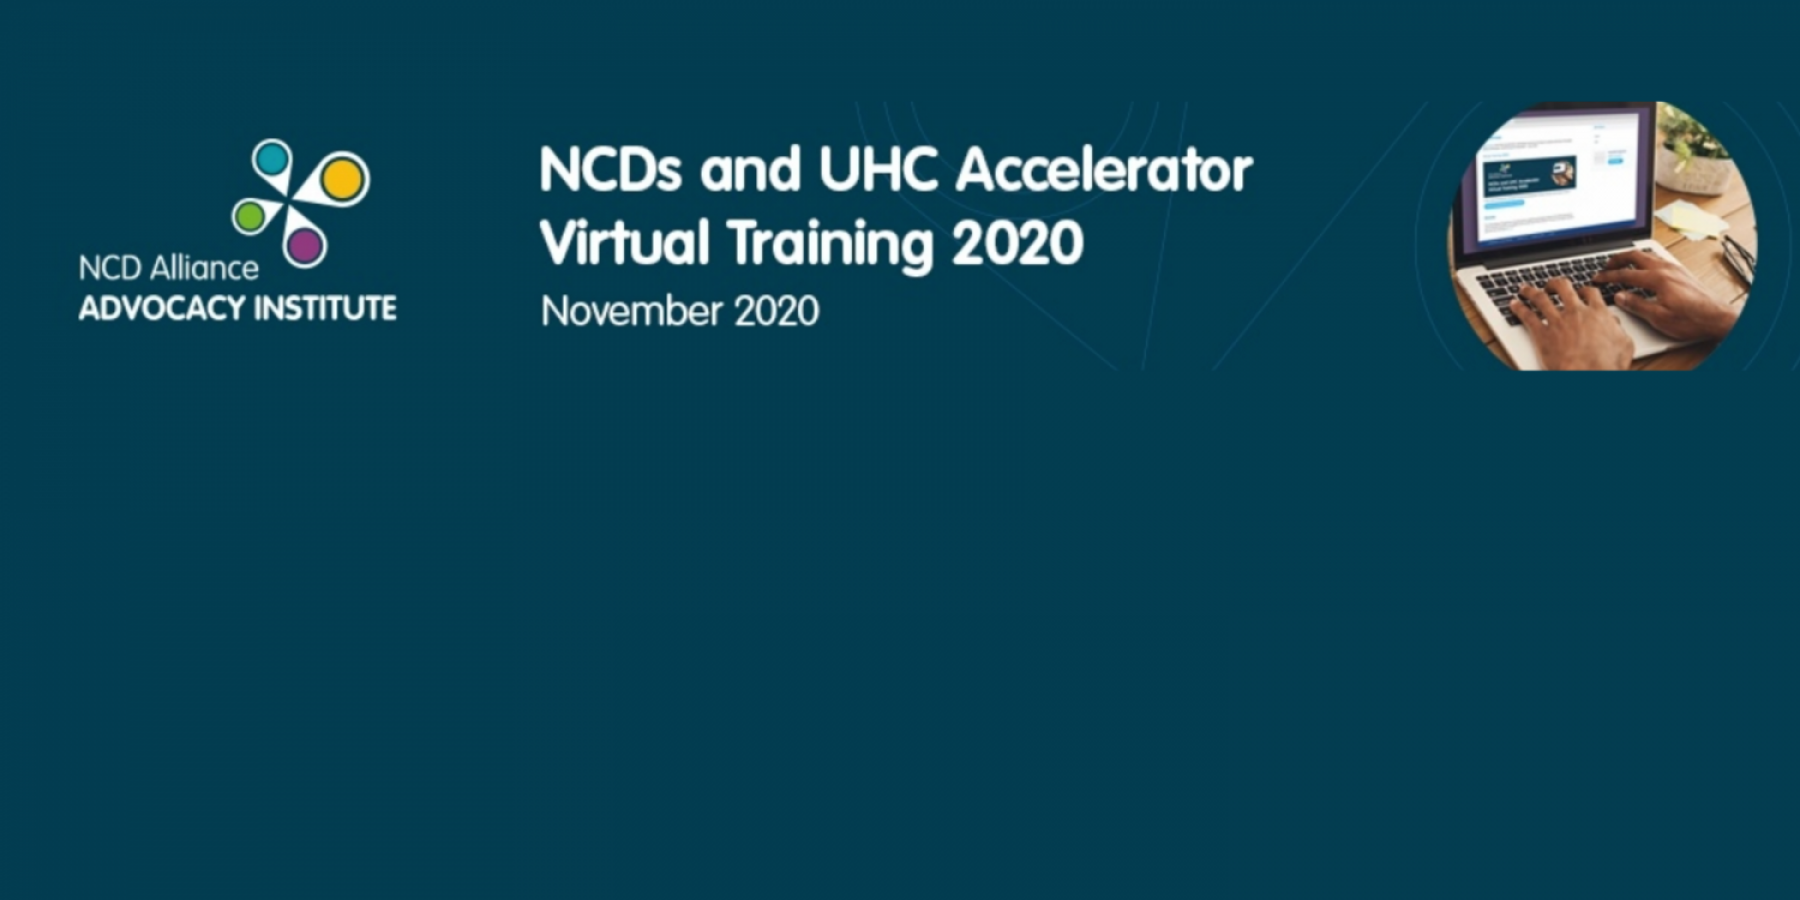 NCDs and UHC Accelerator Virtual Training